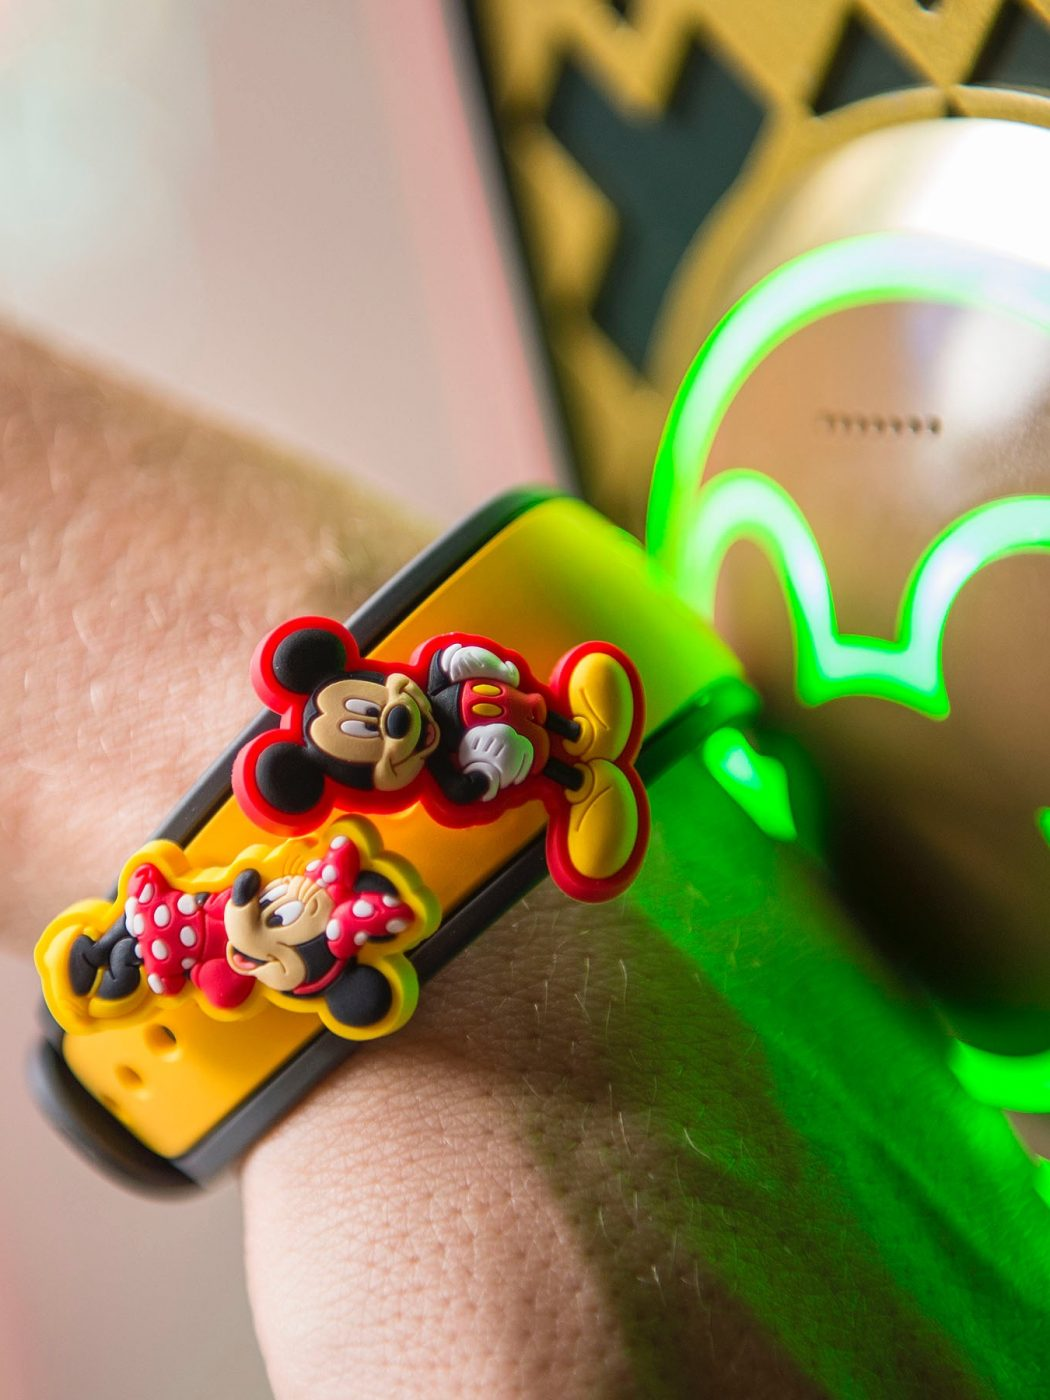 Walt Disney World magic bands store your ticket information and more